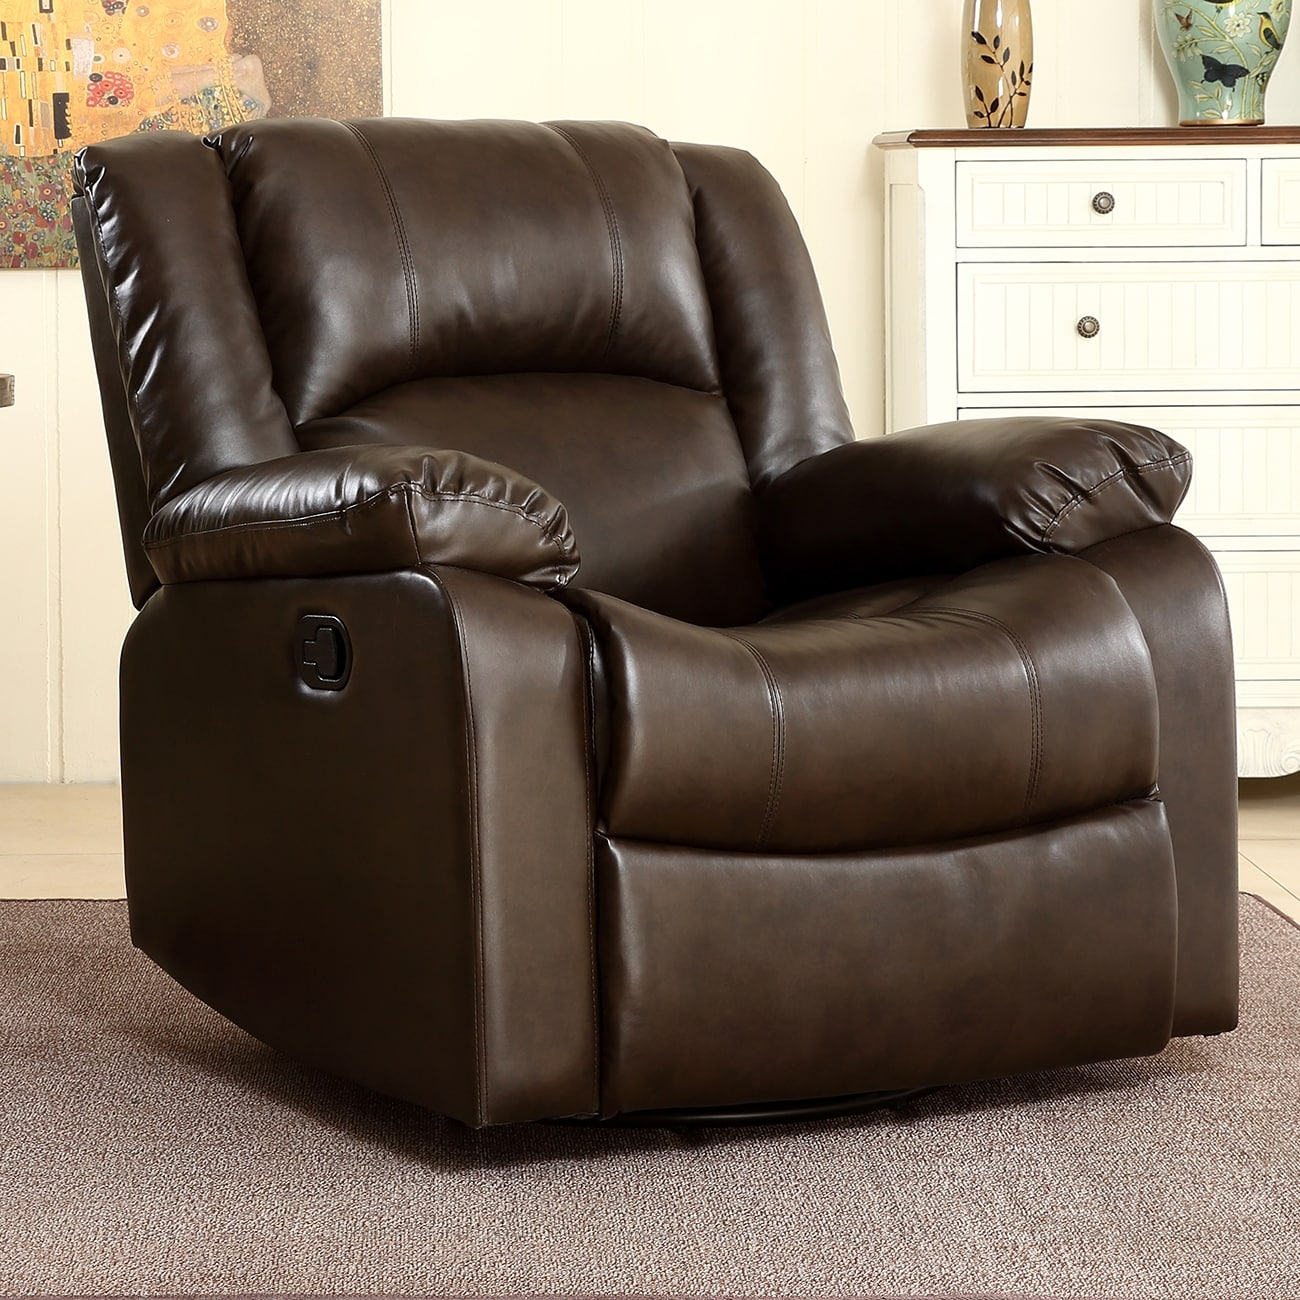 Swivel Rocker Recliner Chair Belleze Rocker And Swivel Glider Recliner Chair Faux Leather For Living Room